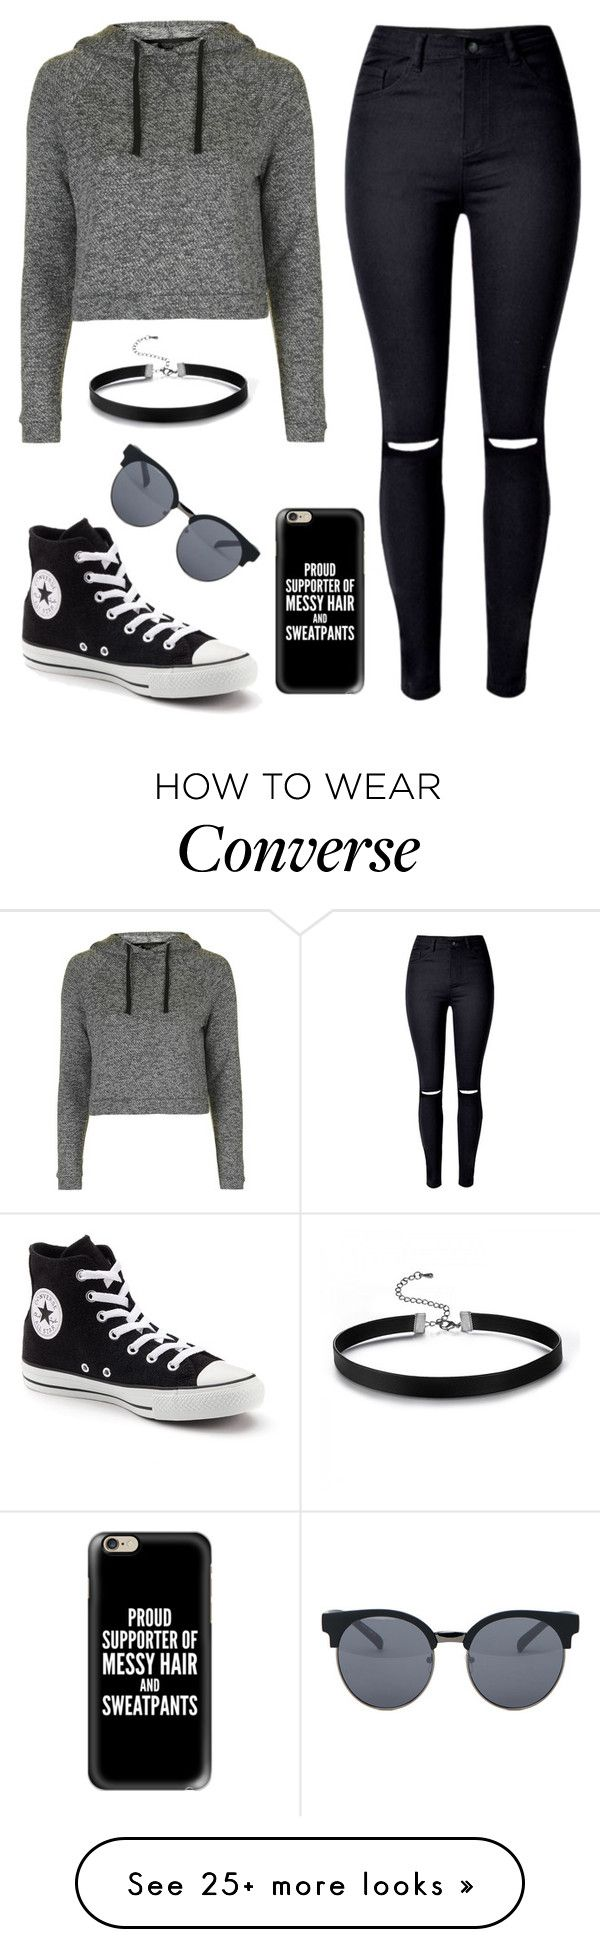 """Lazy day"" by lindseysmart on Polyvore featuring Topshop, WithChic, Converse, Casetify and Quay"